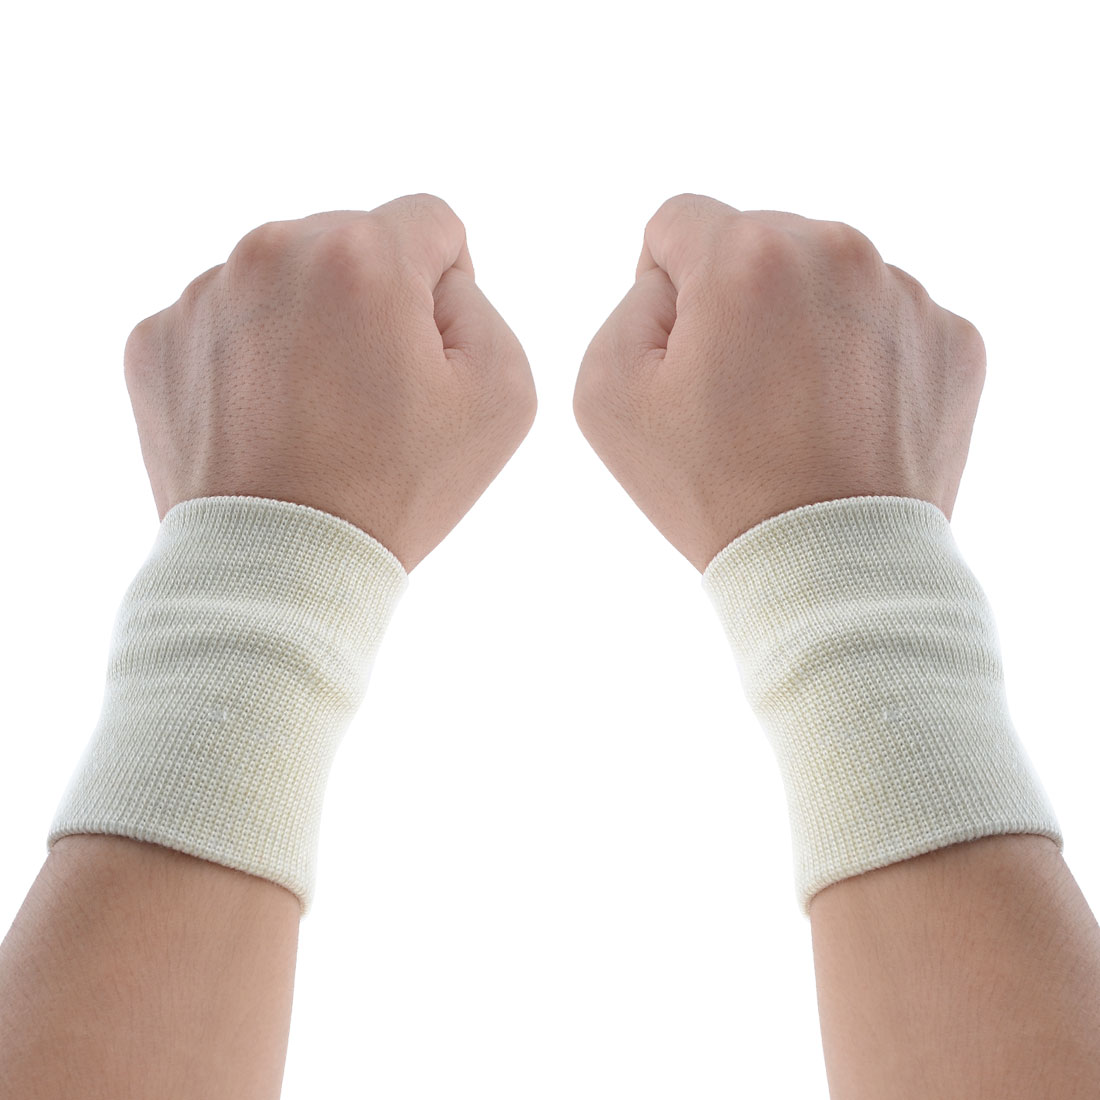 Gym Sports Beige Elastic Band Wrist Brace Support Protector